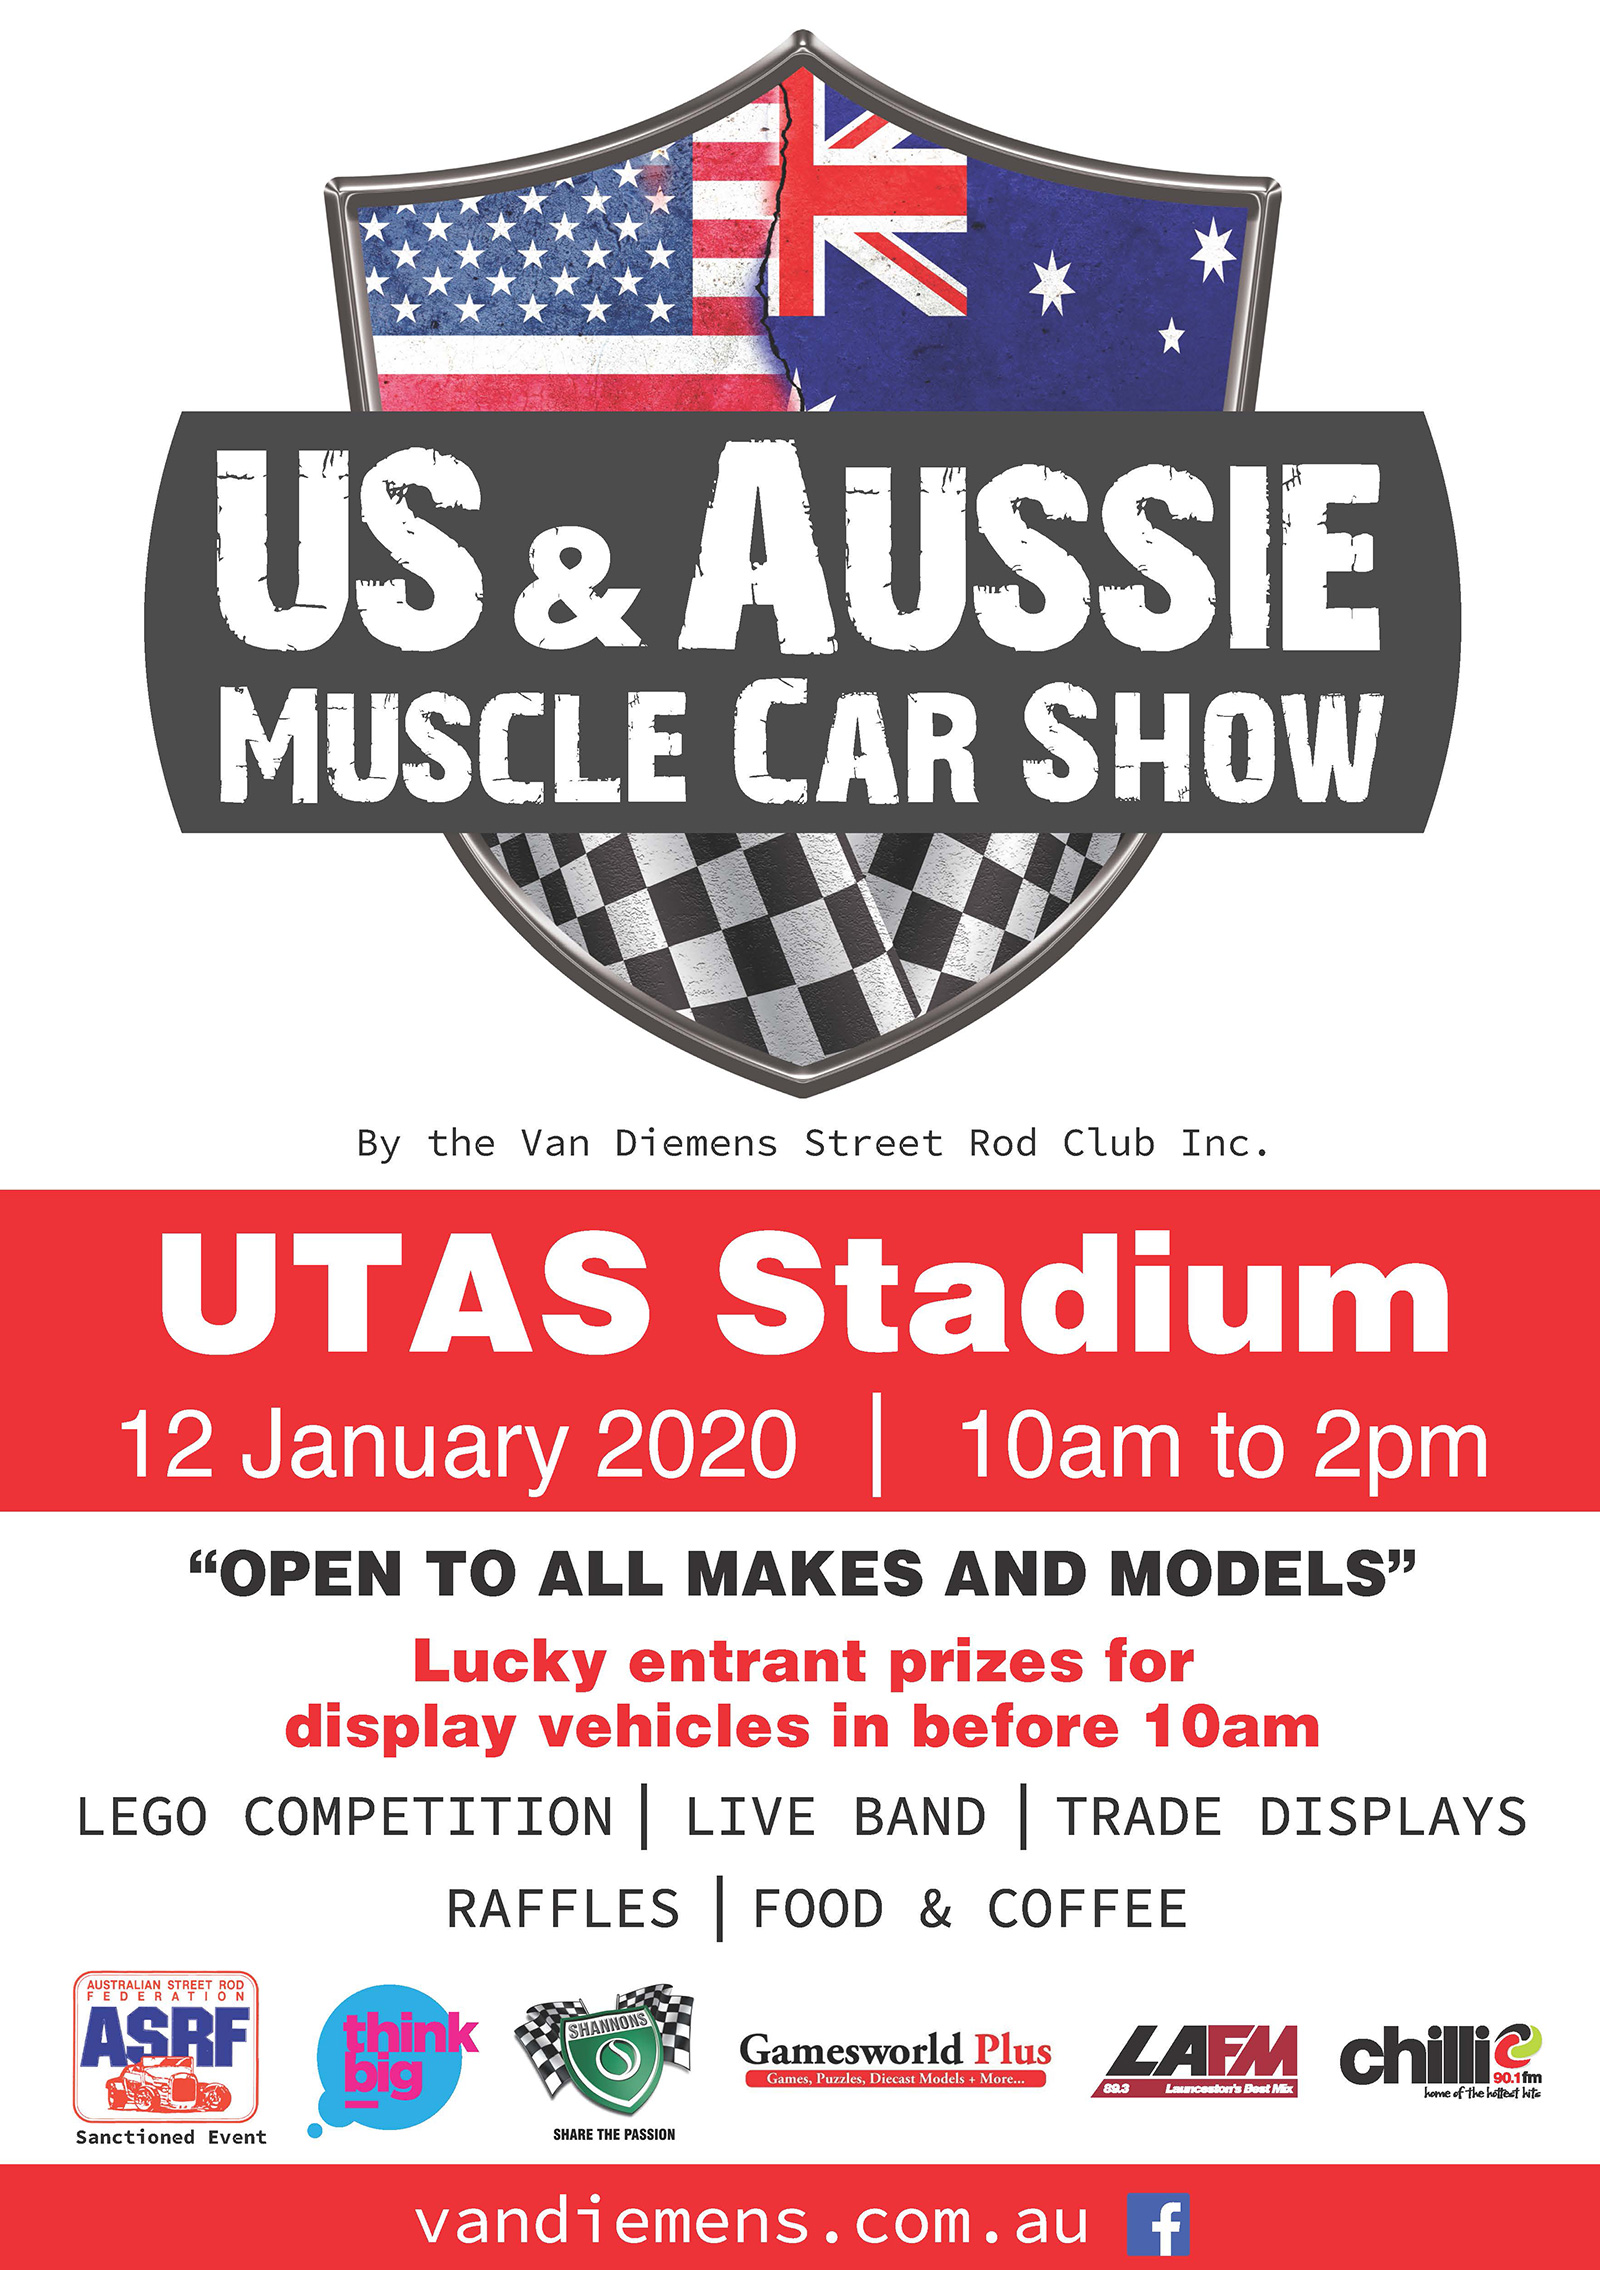 US & Aussie Muscle Car Show 2020